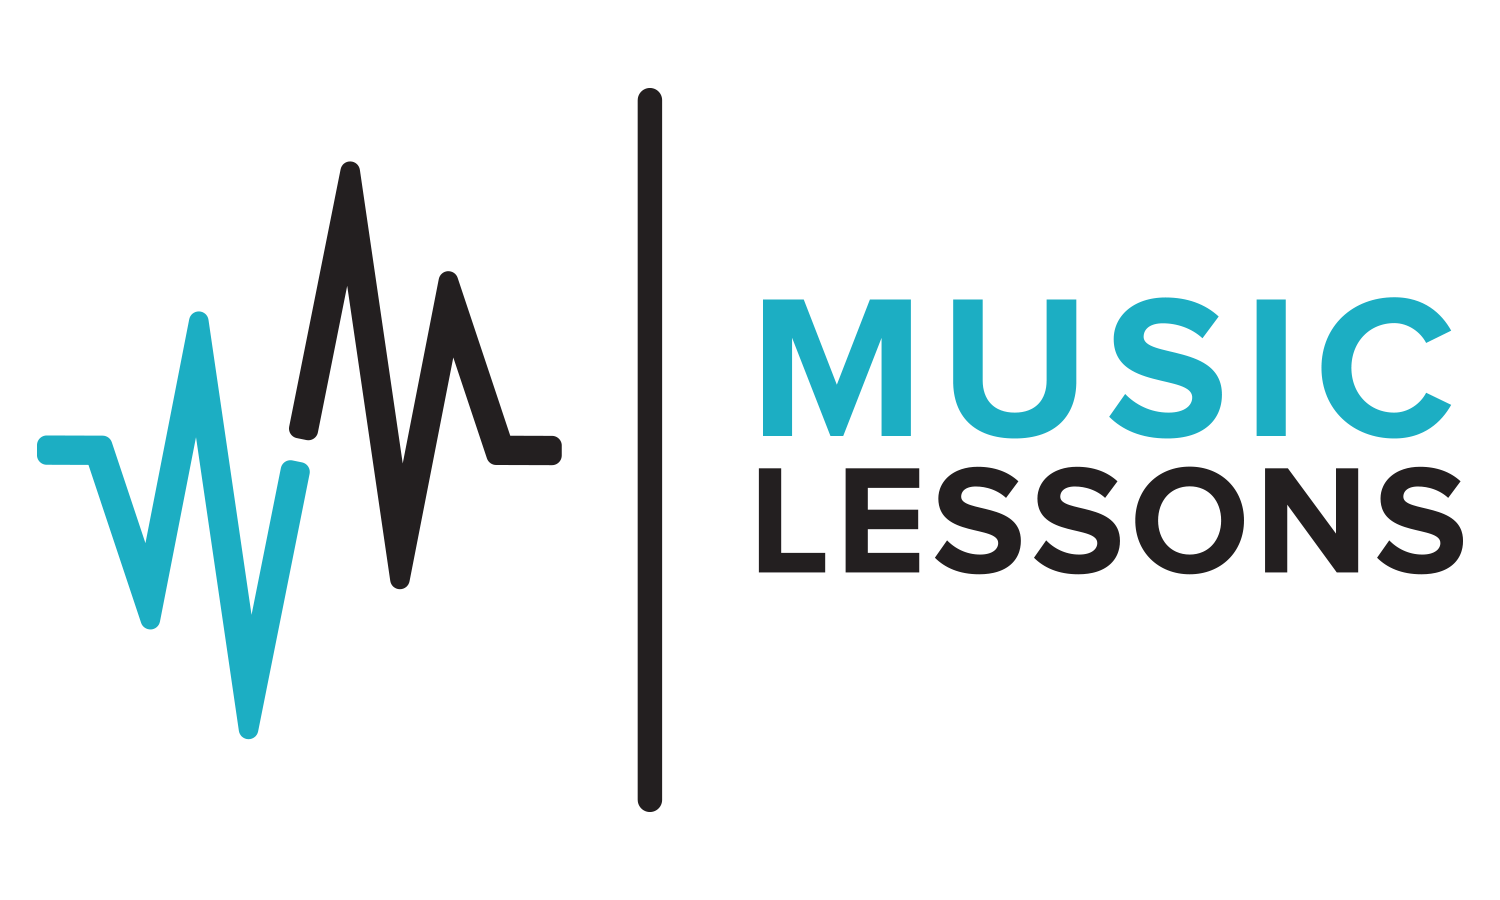 WM Music Lessons | Willie Morales